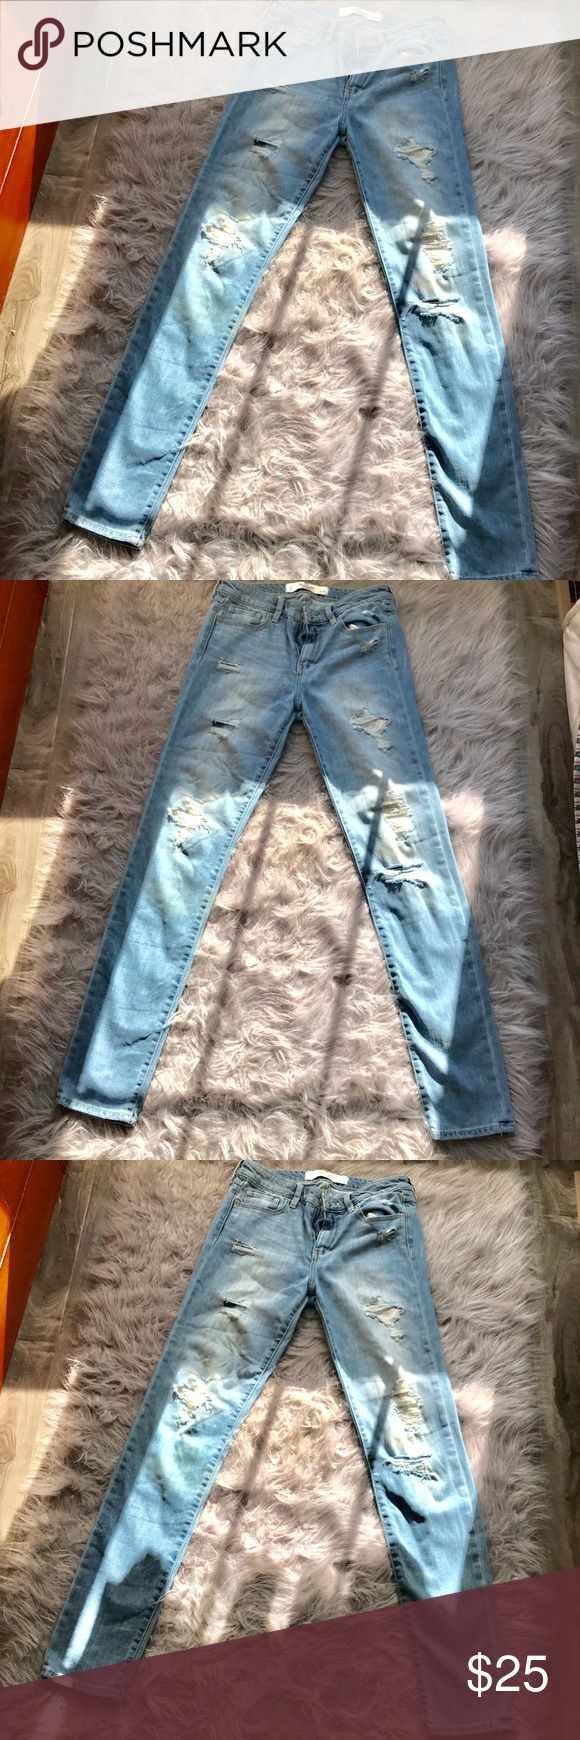 """Abercrombie and Fitch jeans Destroyed denim skinny jeans by a&f with beaded designs inside ripped area of jeans. Length of jeans is 41"""", inseam is 30.5,"""" waist is 27"""" Abercrombie & Fitch Jeans Skinny"""